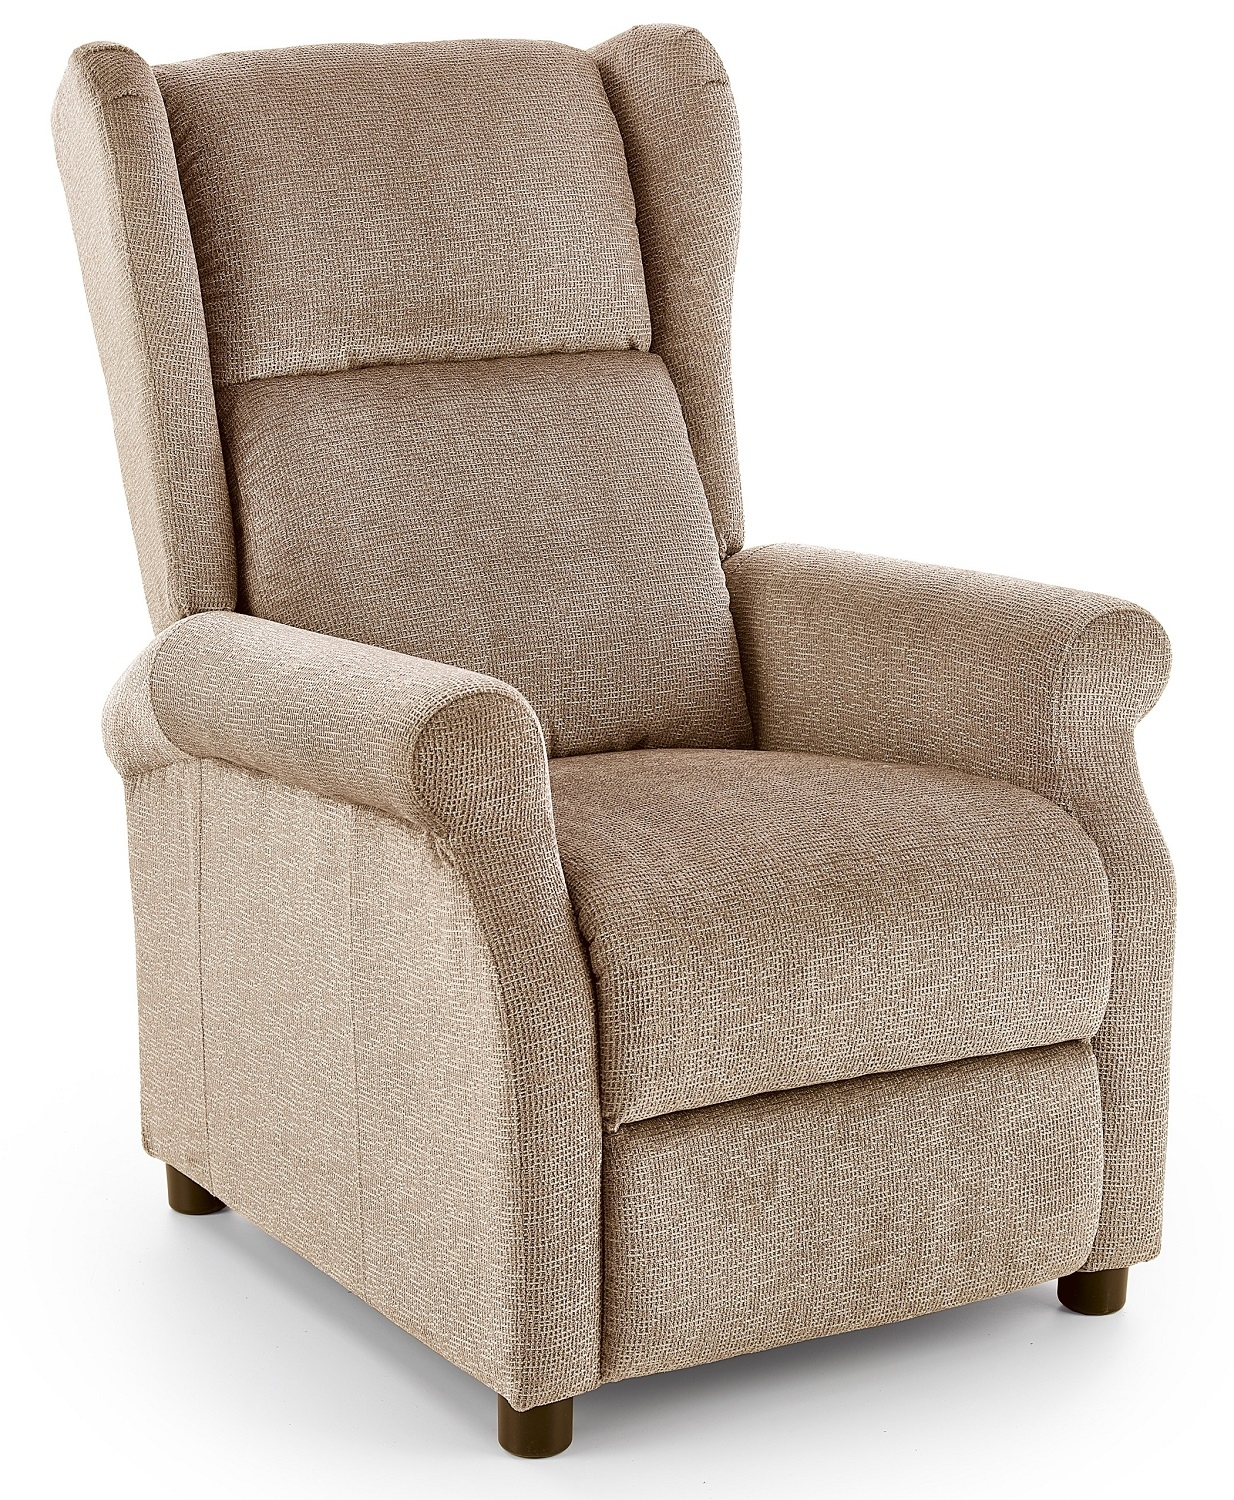 Fauteuil Agustin in beige | Home Style